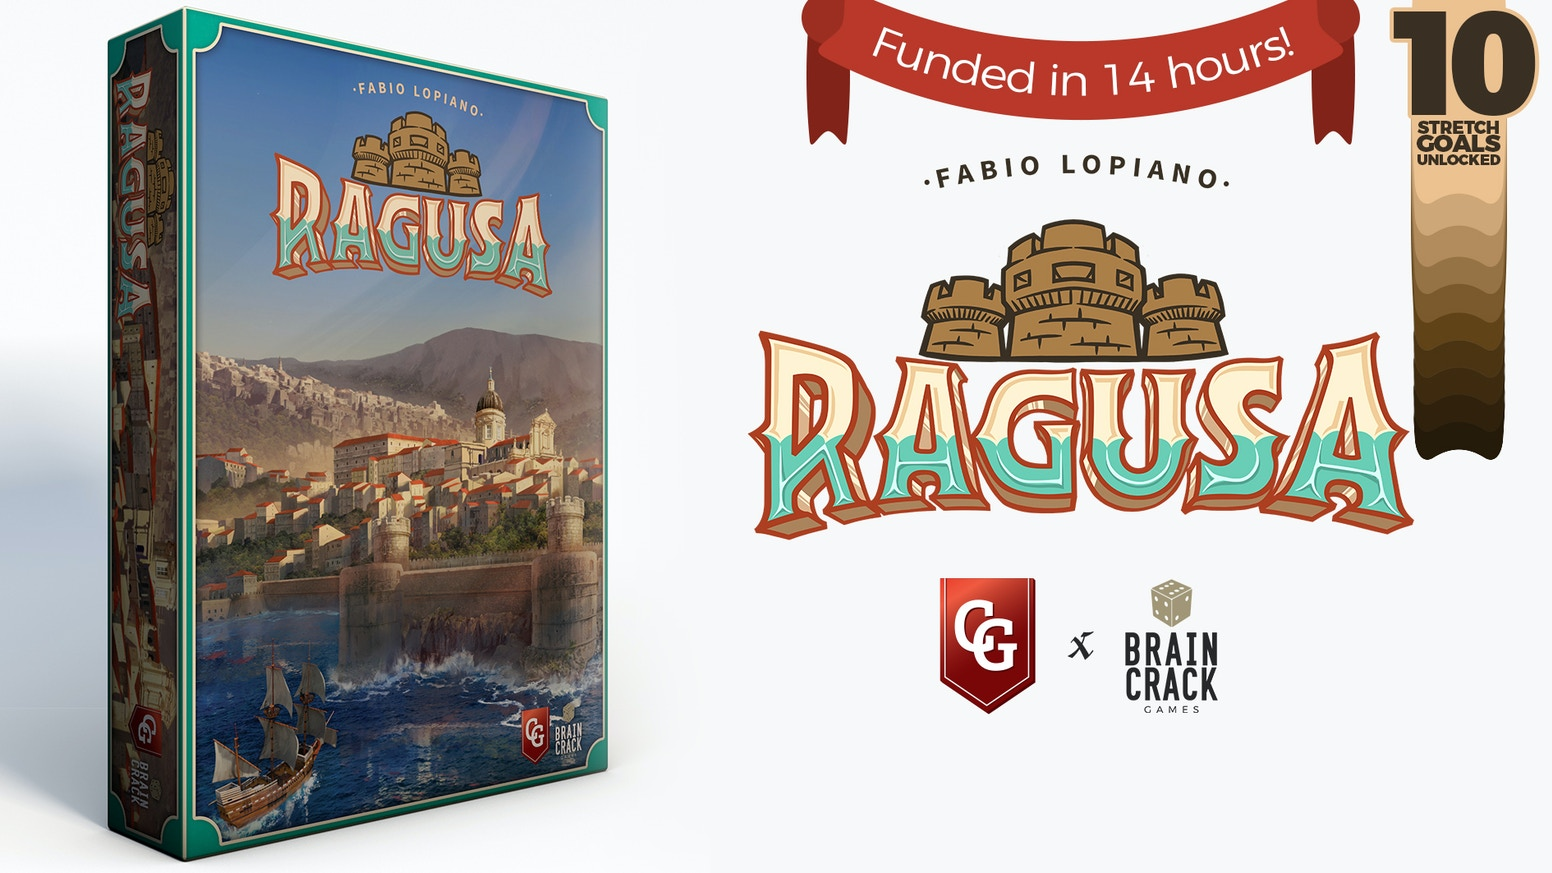 A Mediterranean city-builder from award-winning designer Fabio Lopiano, with custom components and a dedicated solo mode.